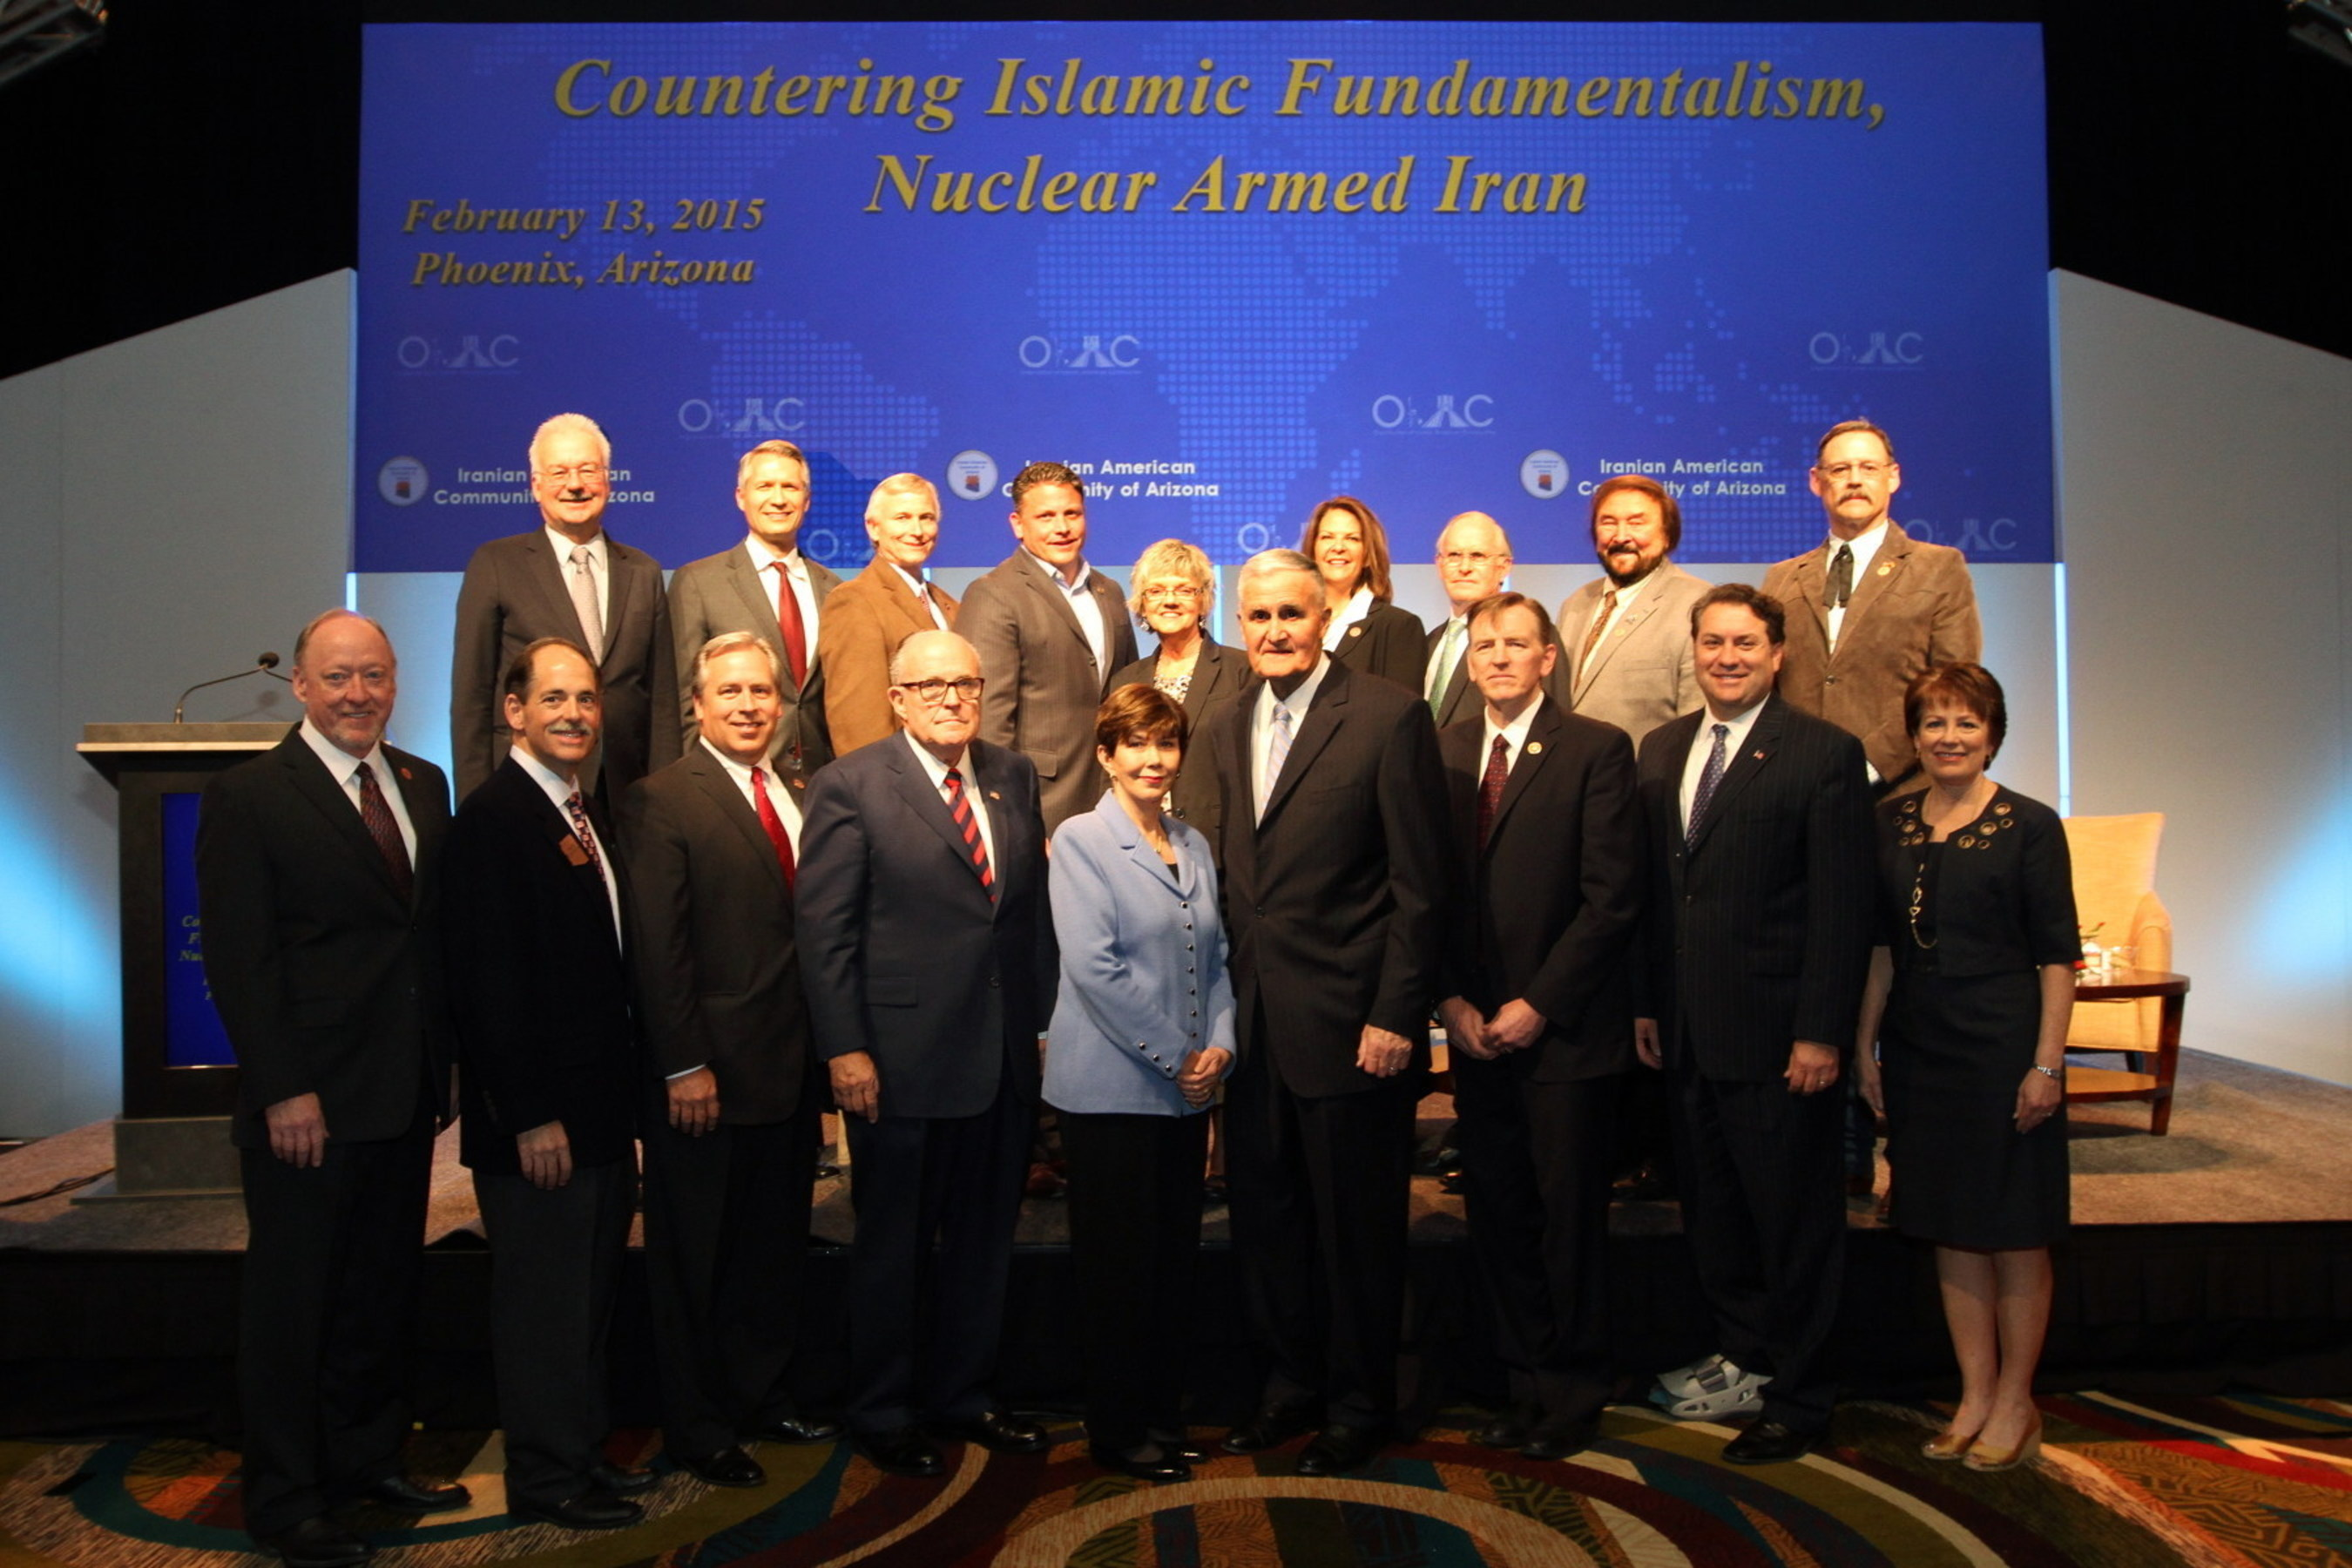 "Mayor Rudy Giuliani, General Hugh Shelton and Linda Chavez joined Prominent Arizona officials to discuss ""Countering Islamic Fundamentalism, a Nuclear-Armed Iran"" on Feb. 13, 2015 in Phoenix, AZ."